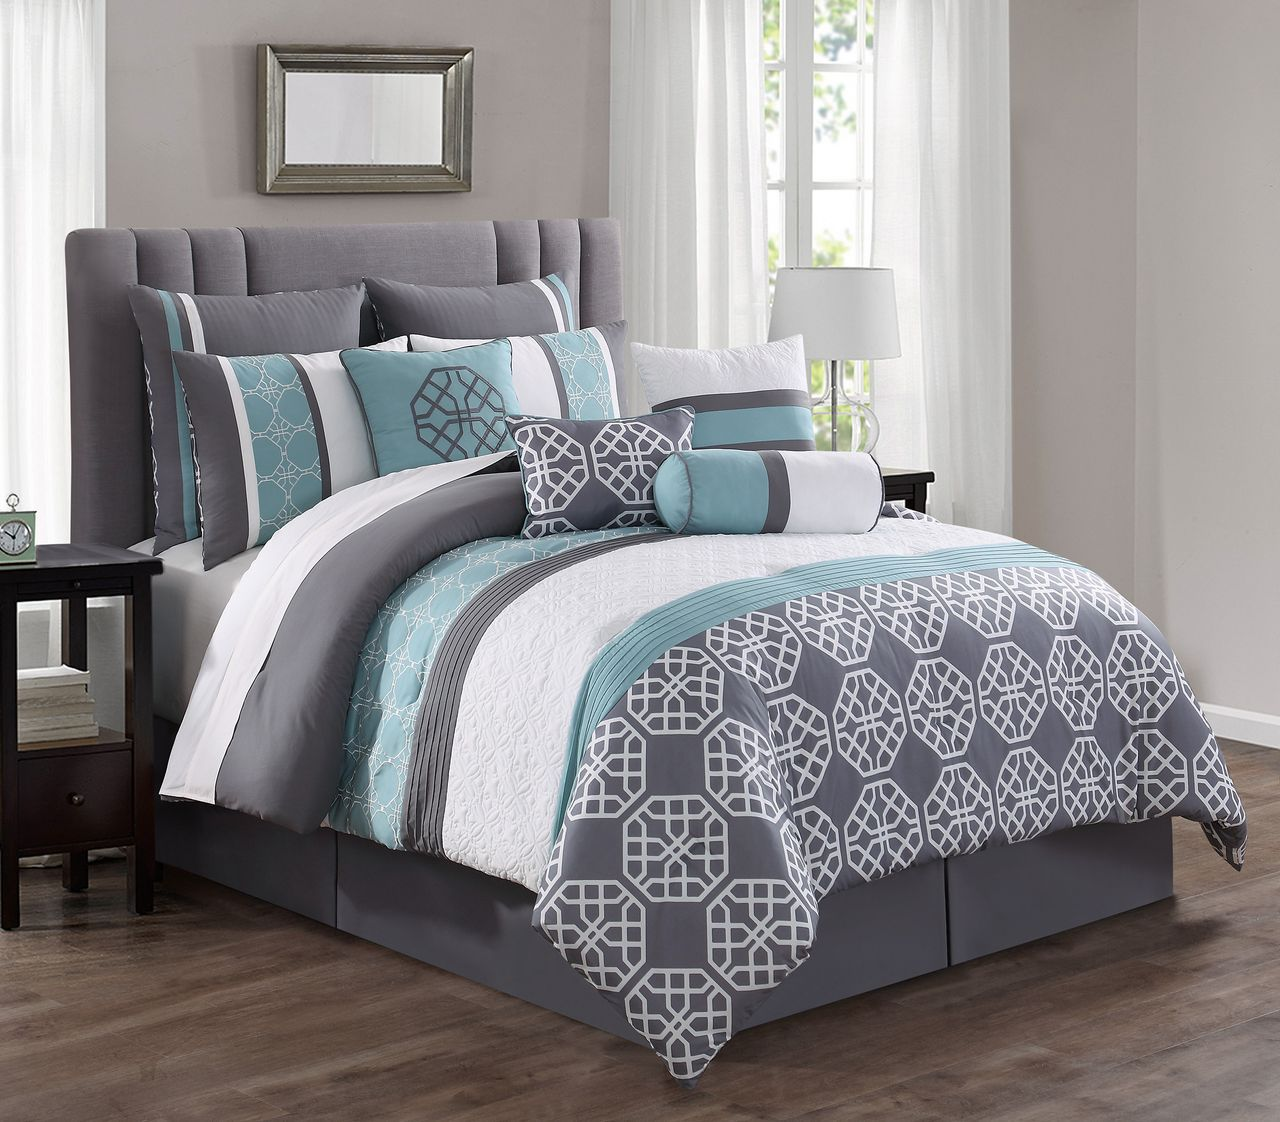 Best 14 Piece Aubrey Spa Gray White Reversible Bed In A Bag Set 400 x 300